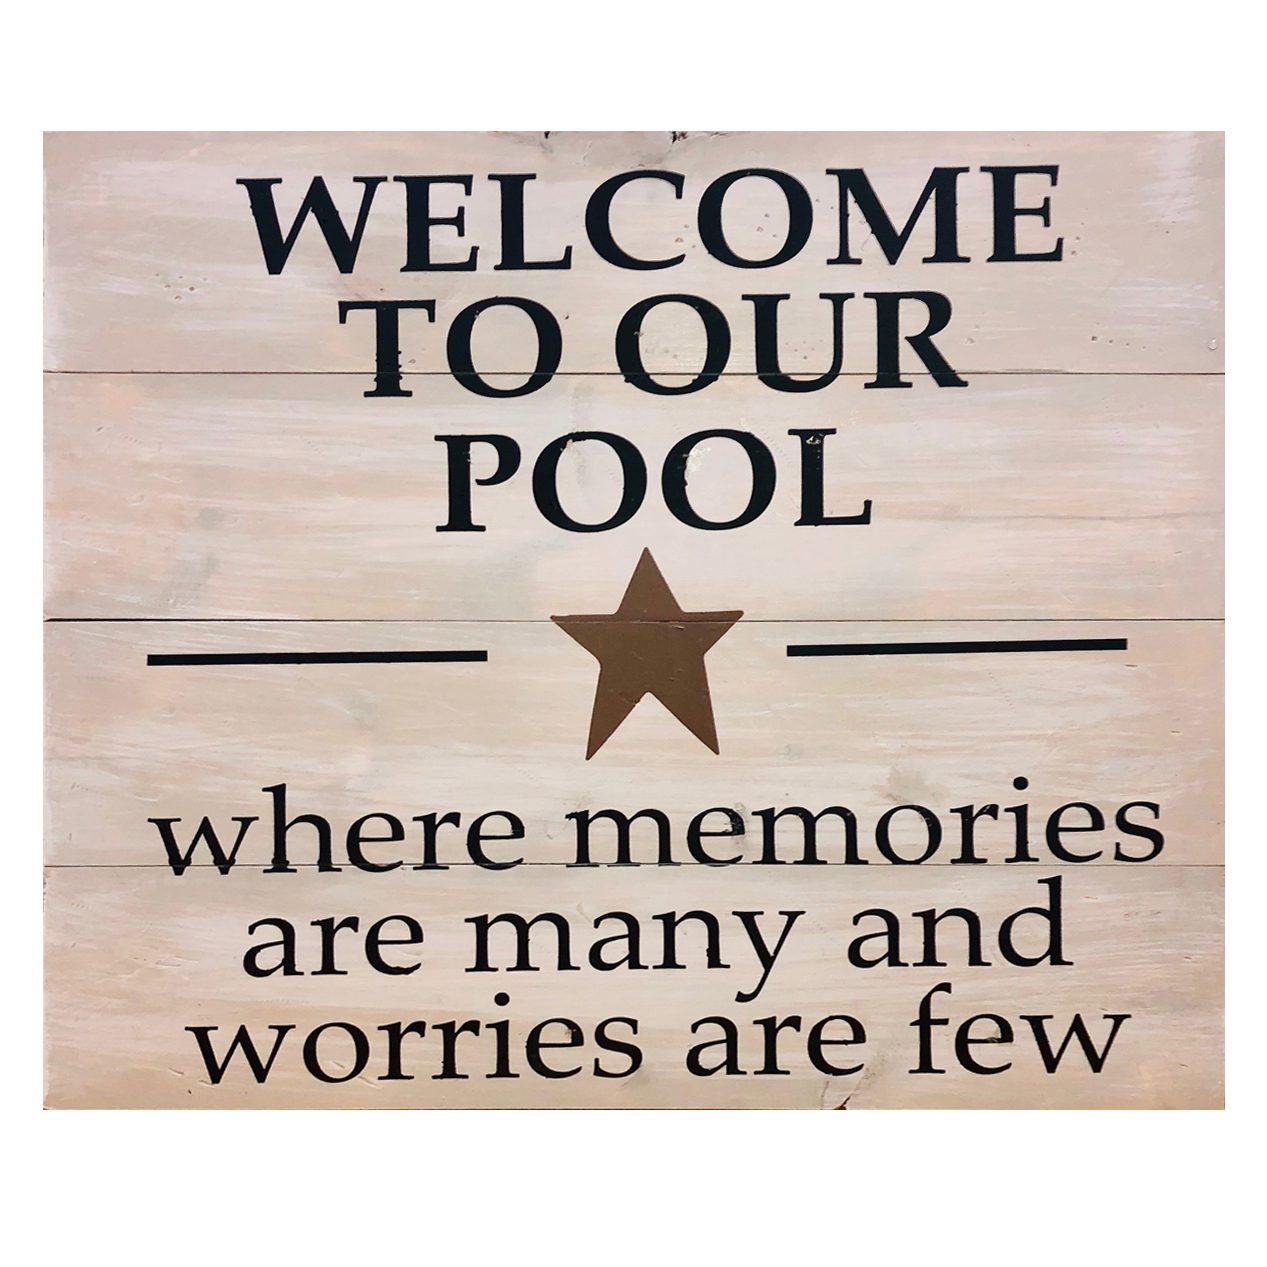 Welcome to our pool wood sign